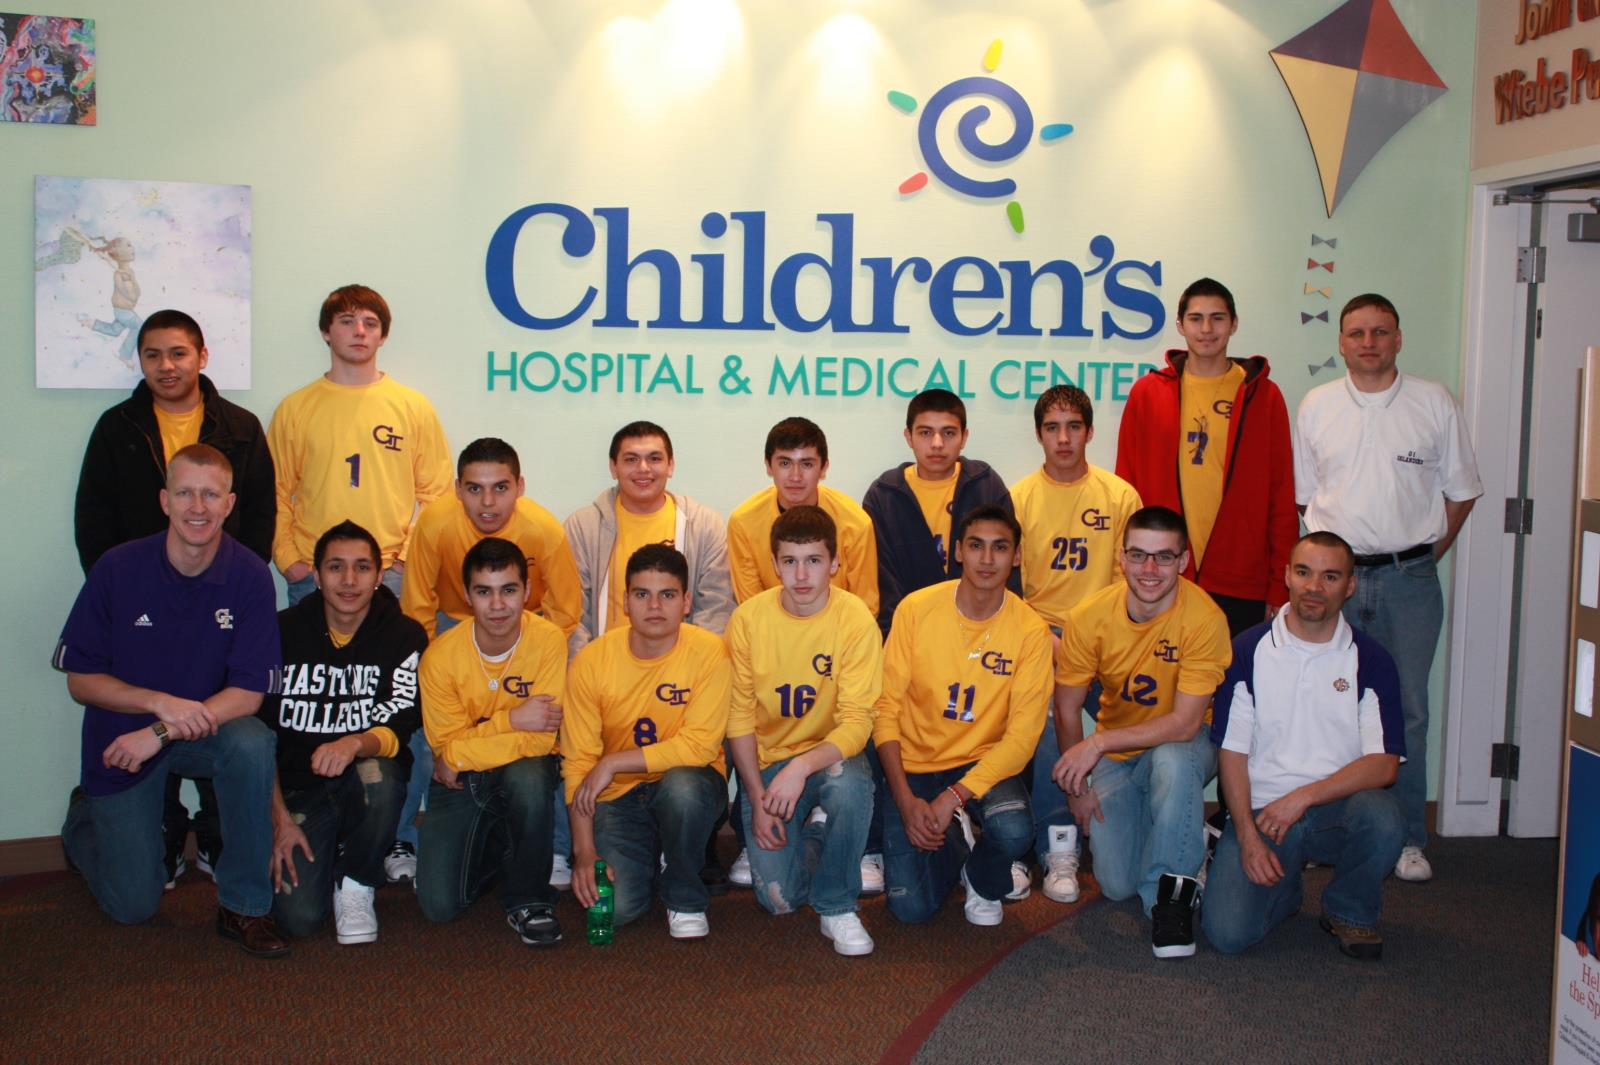 Soccer team at Children's Hospital